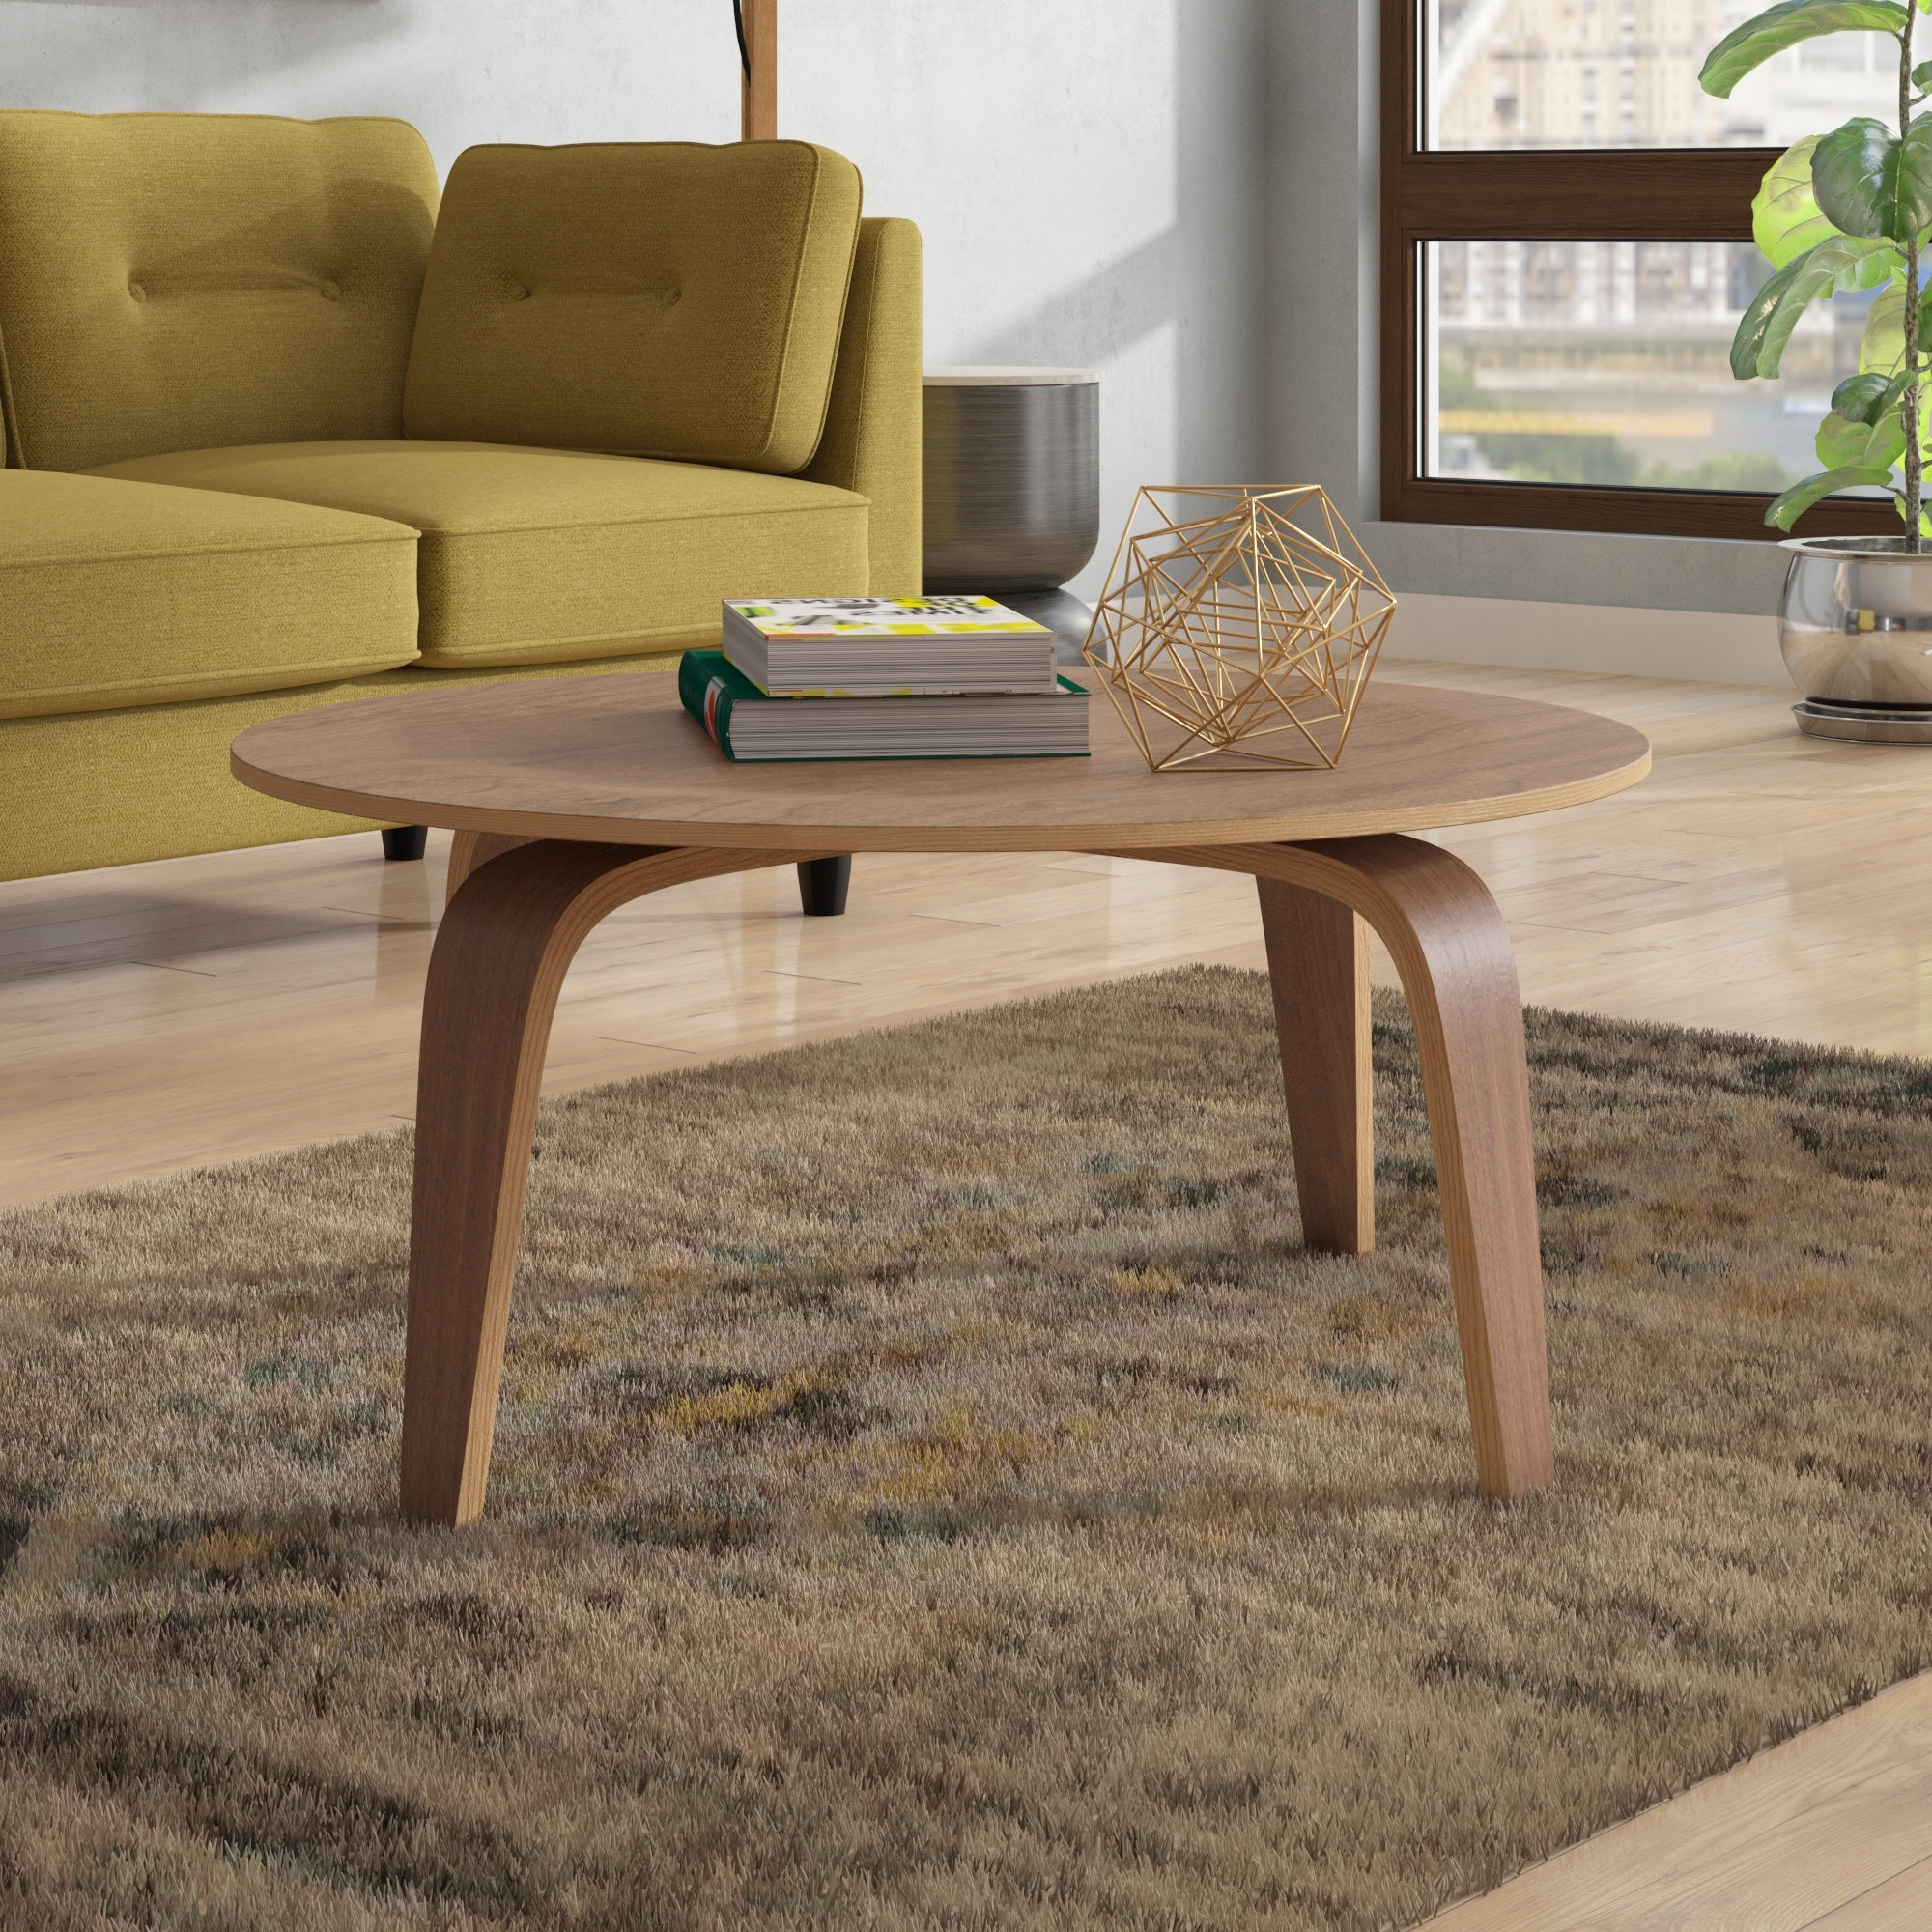 Most Current Stack Hi Gloss Wood Coffee Tables With Regard To Langley Street Finnur Coffee Table & Reviews (View 11 of 20)